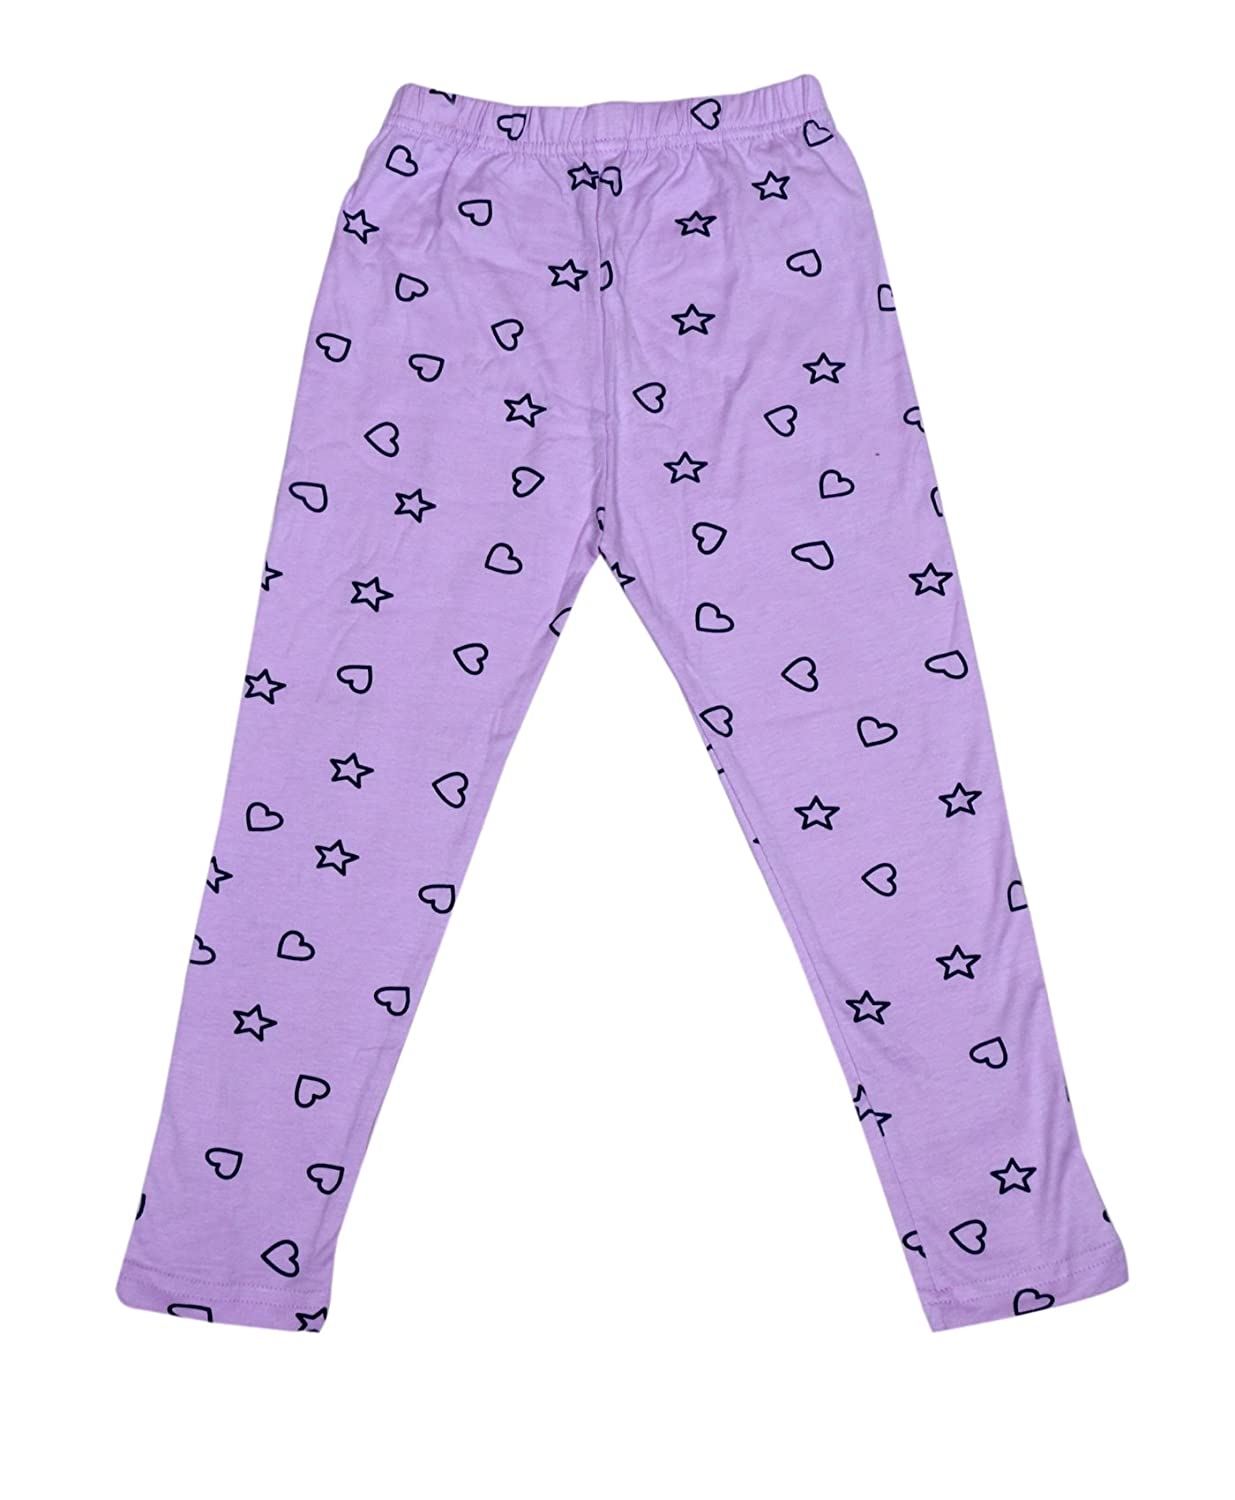 Pack Of 3 Indistar Girls Super Soft and Stylish Cotton Printed Leggings